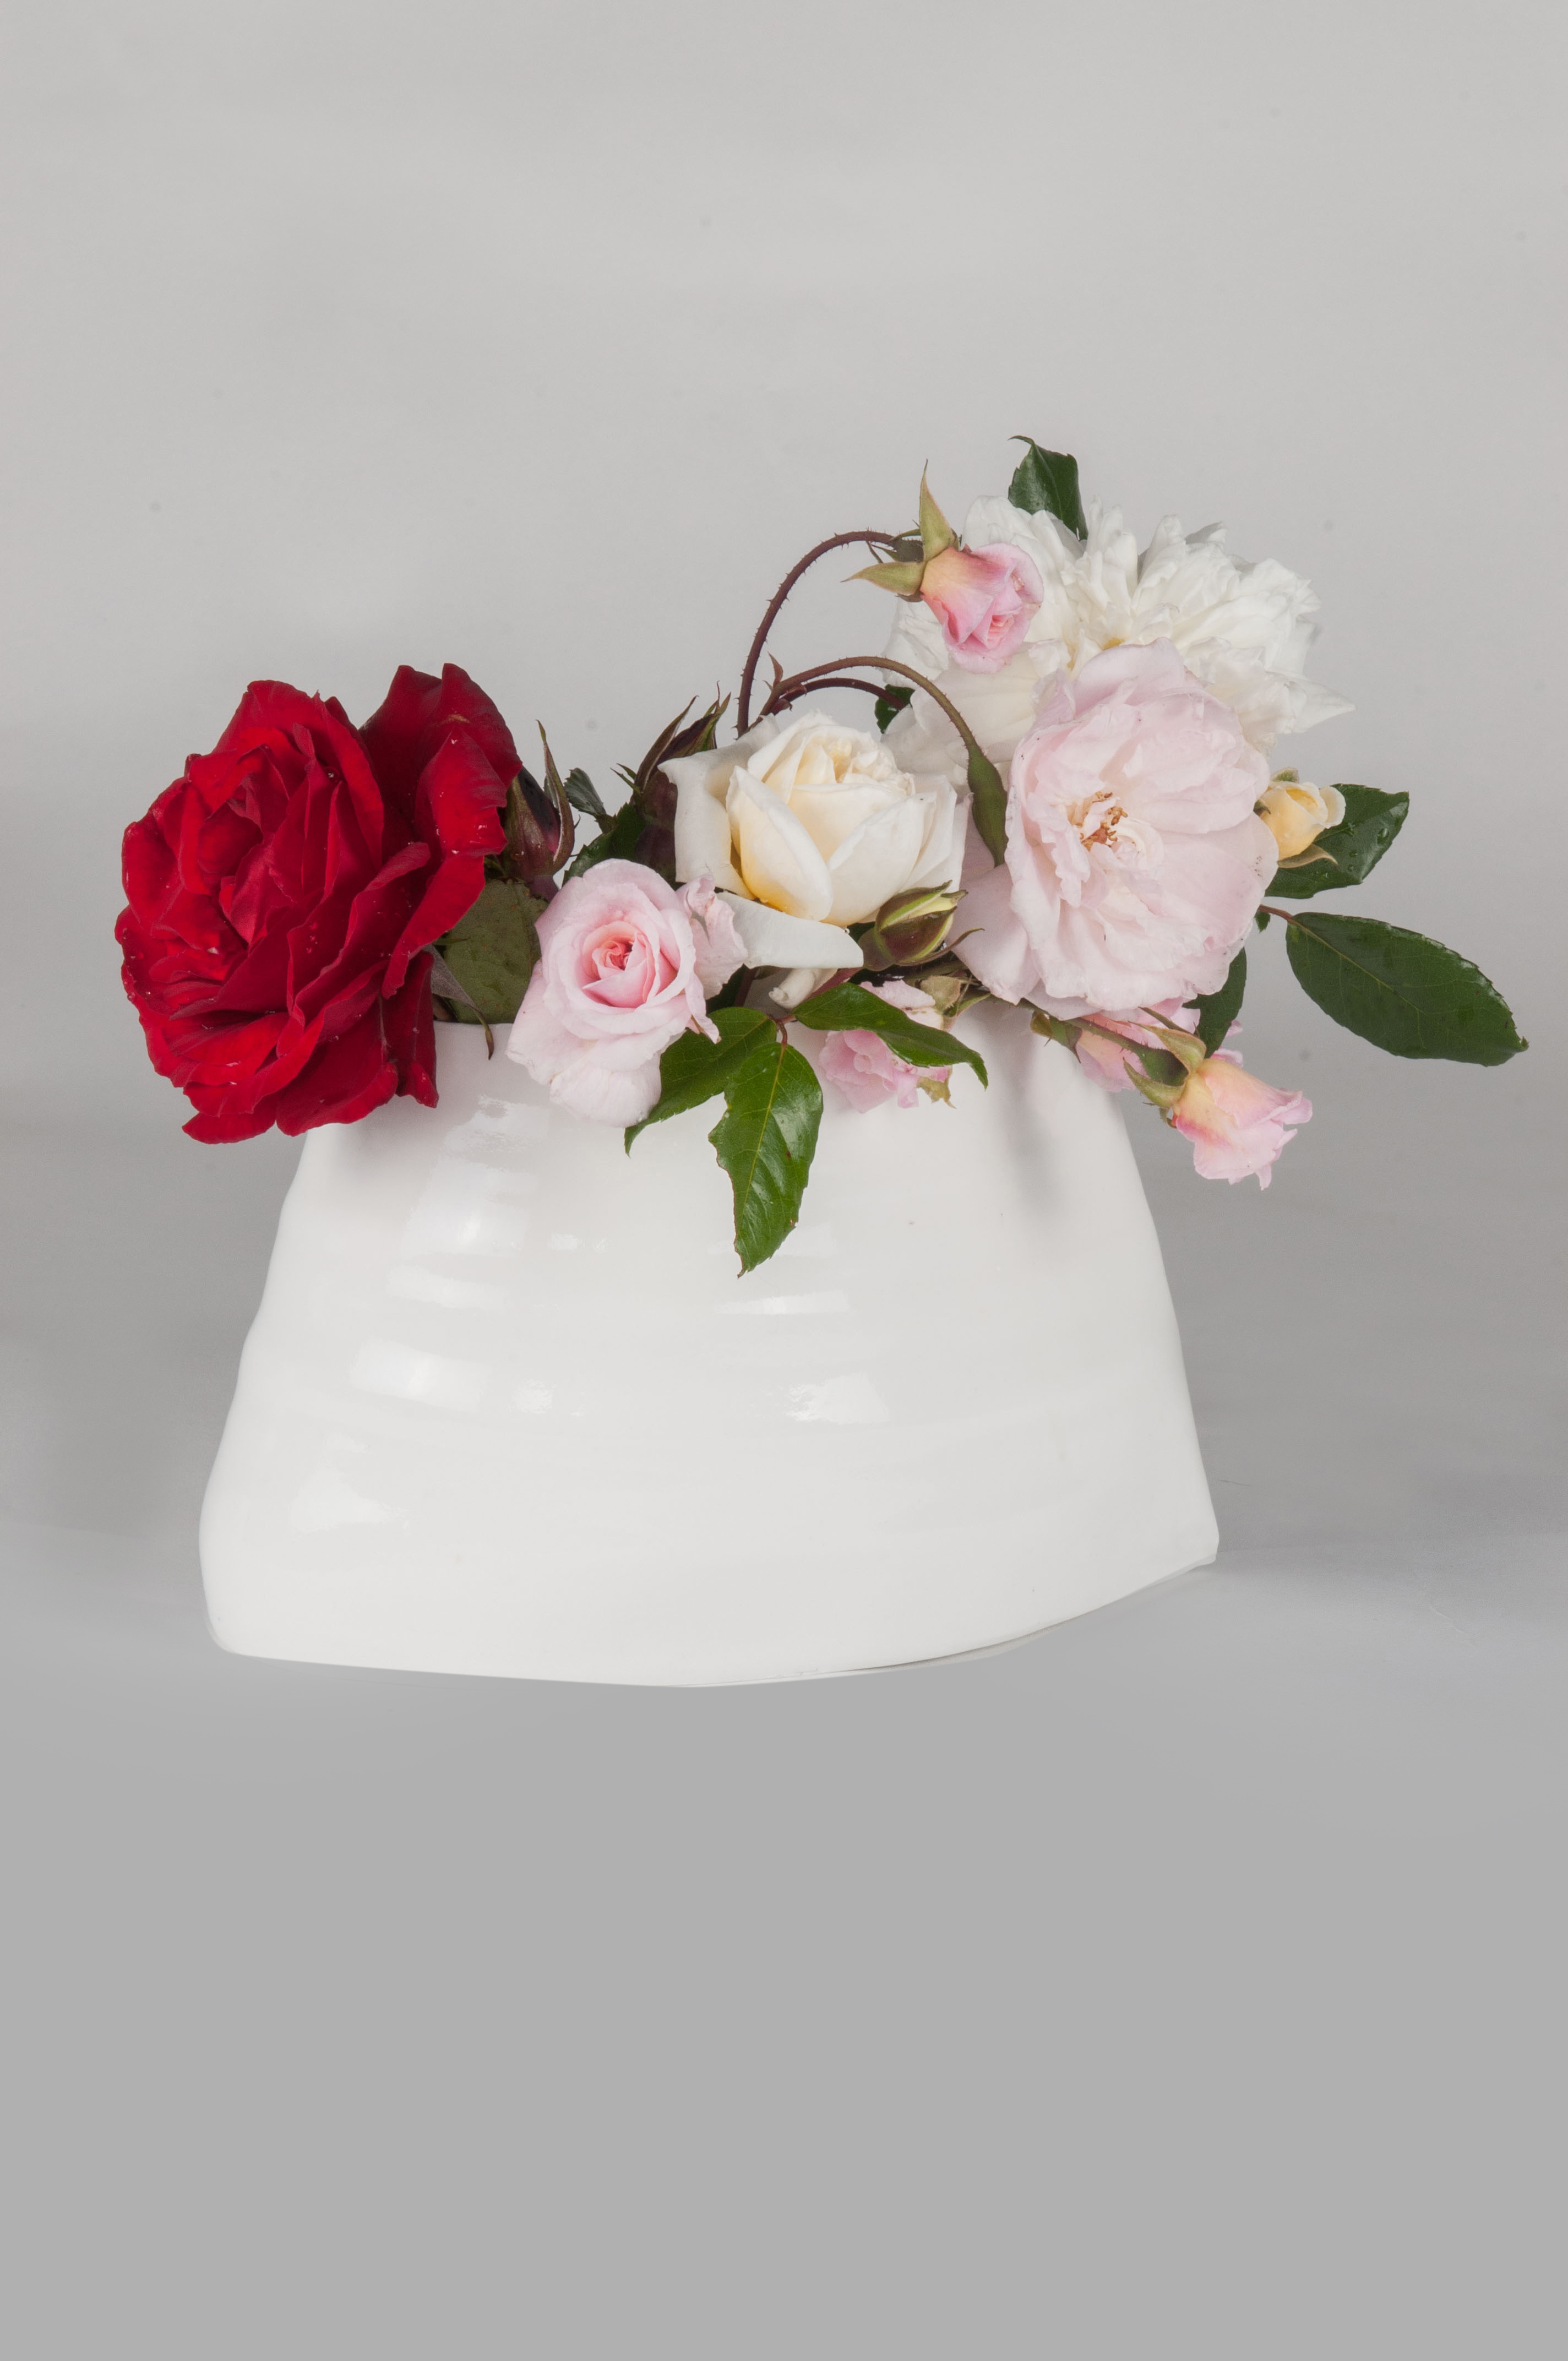 Nadine Spalter, white vase with bunch of roses, studio art reproduction porcelaine artist in Auckland, NZ